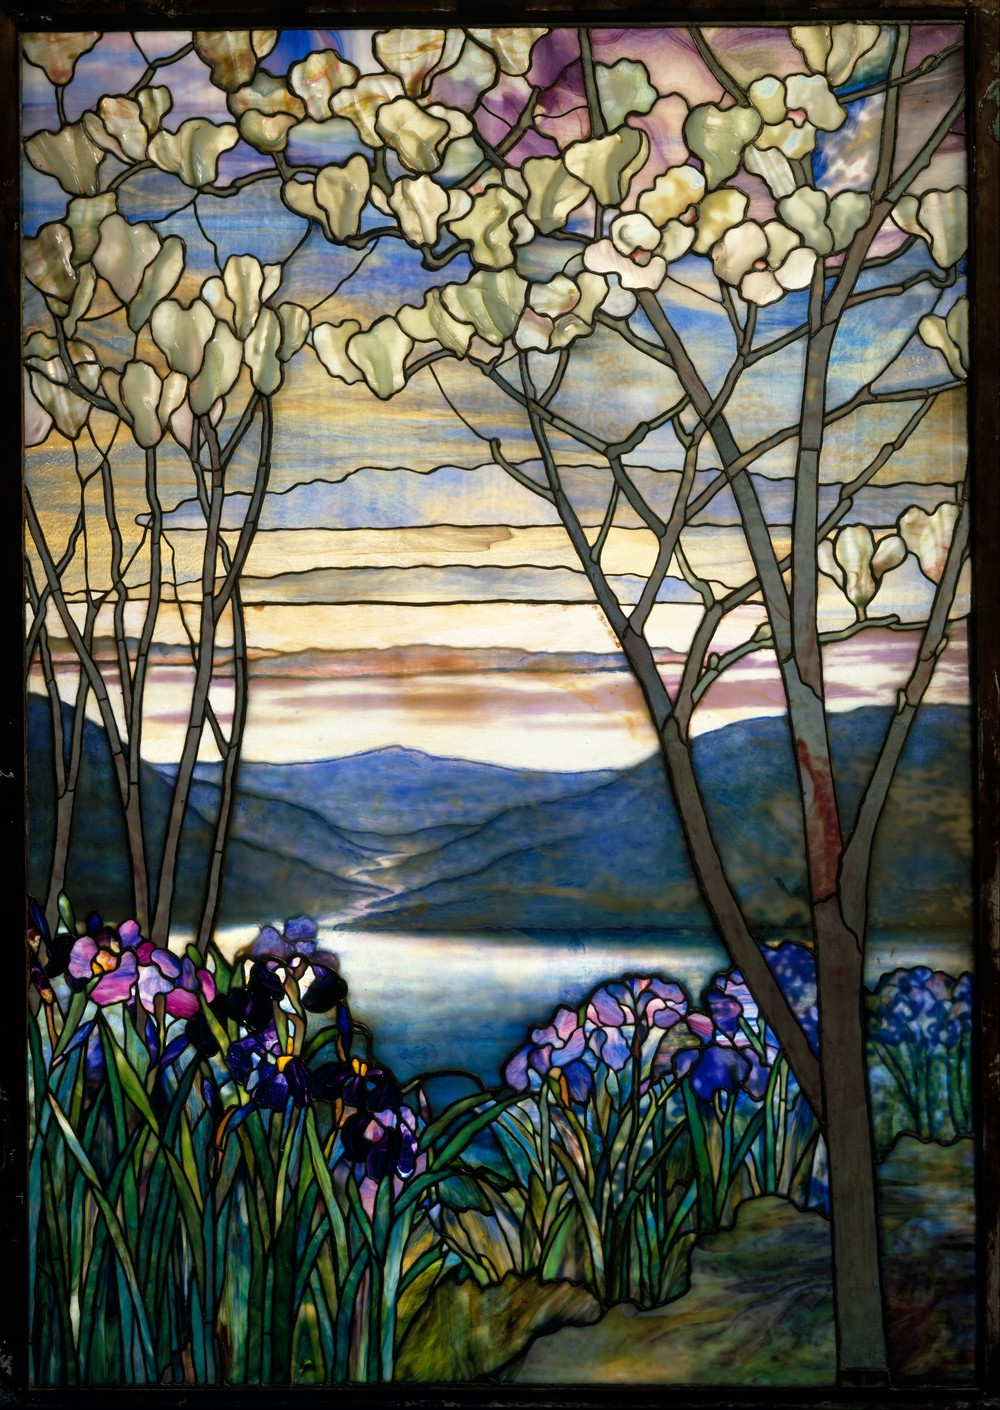 Magnolias and Irises  was designed by Louis c. Tiffany c. 1910 and originally installed in the Frank family mausoleum. Now it lives at  The Met.